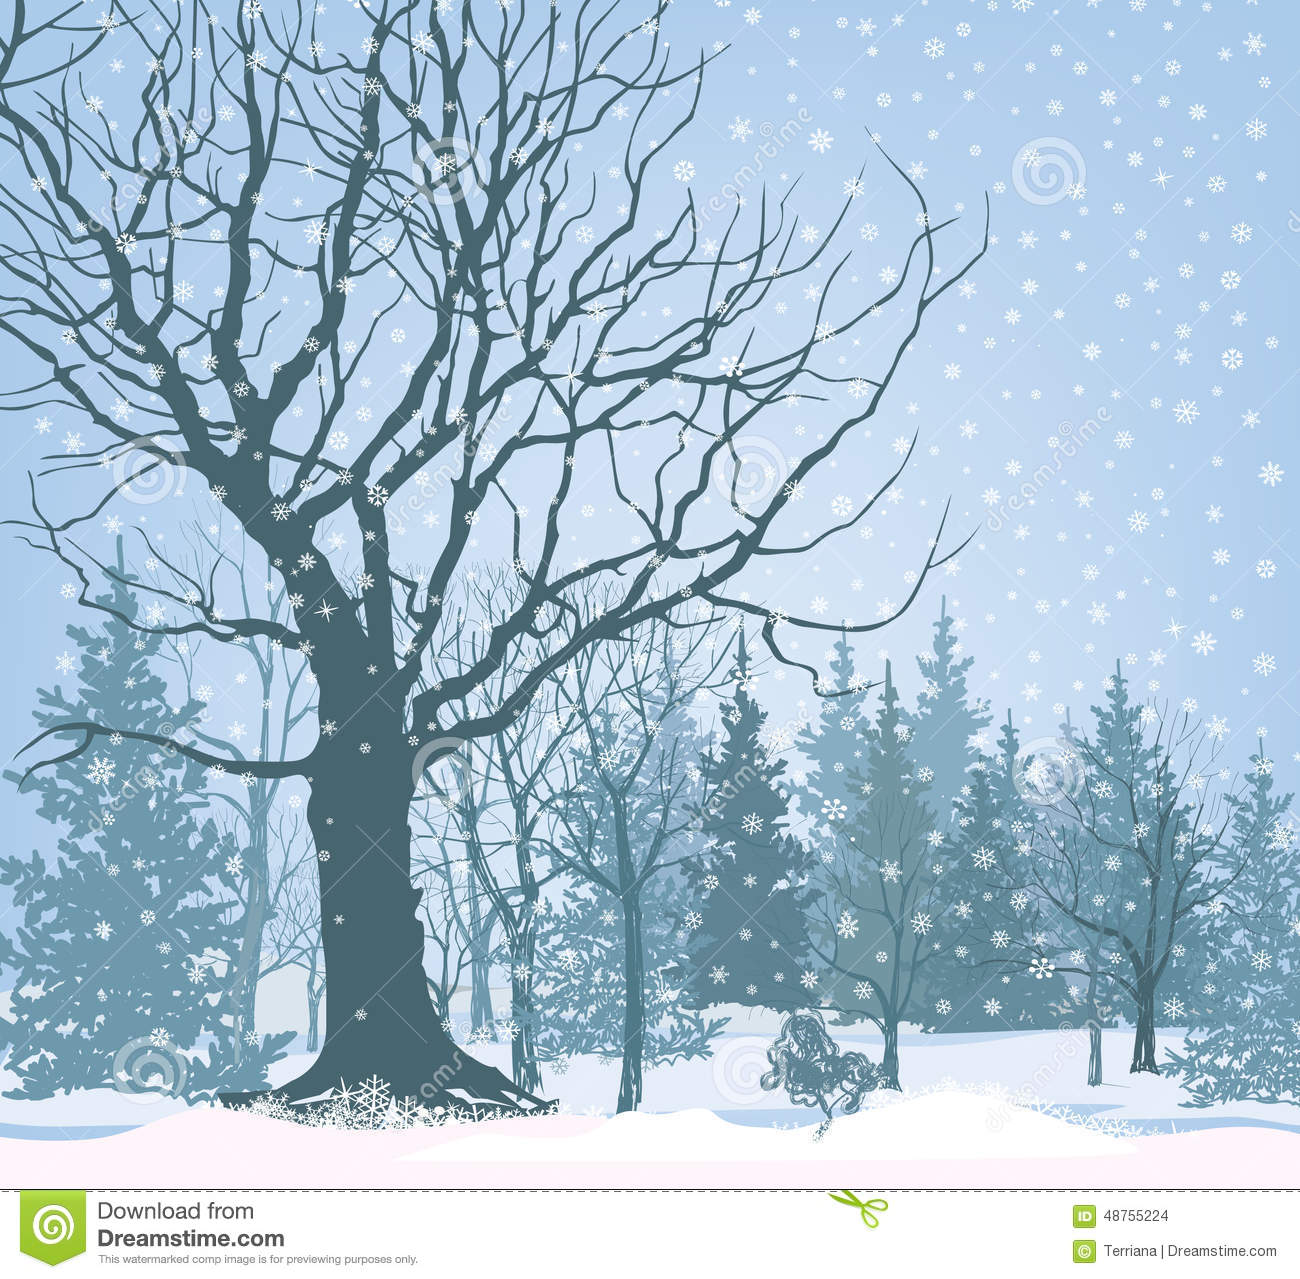 Christmas snow landscape wallpaper snowy forest